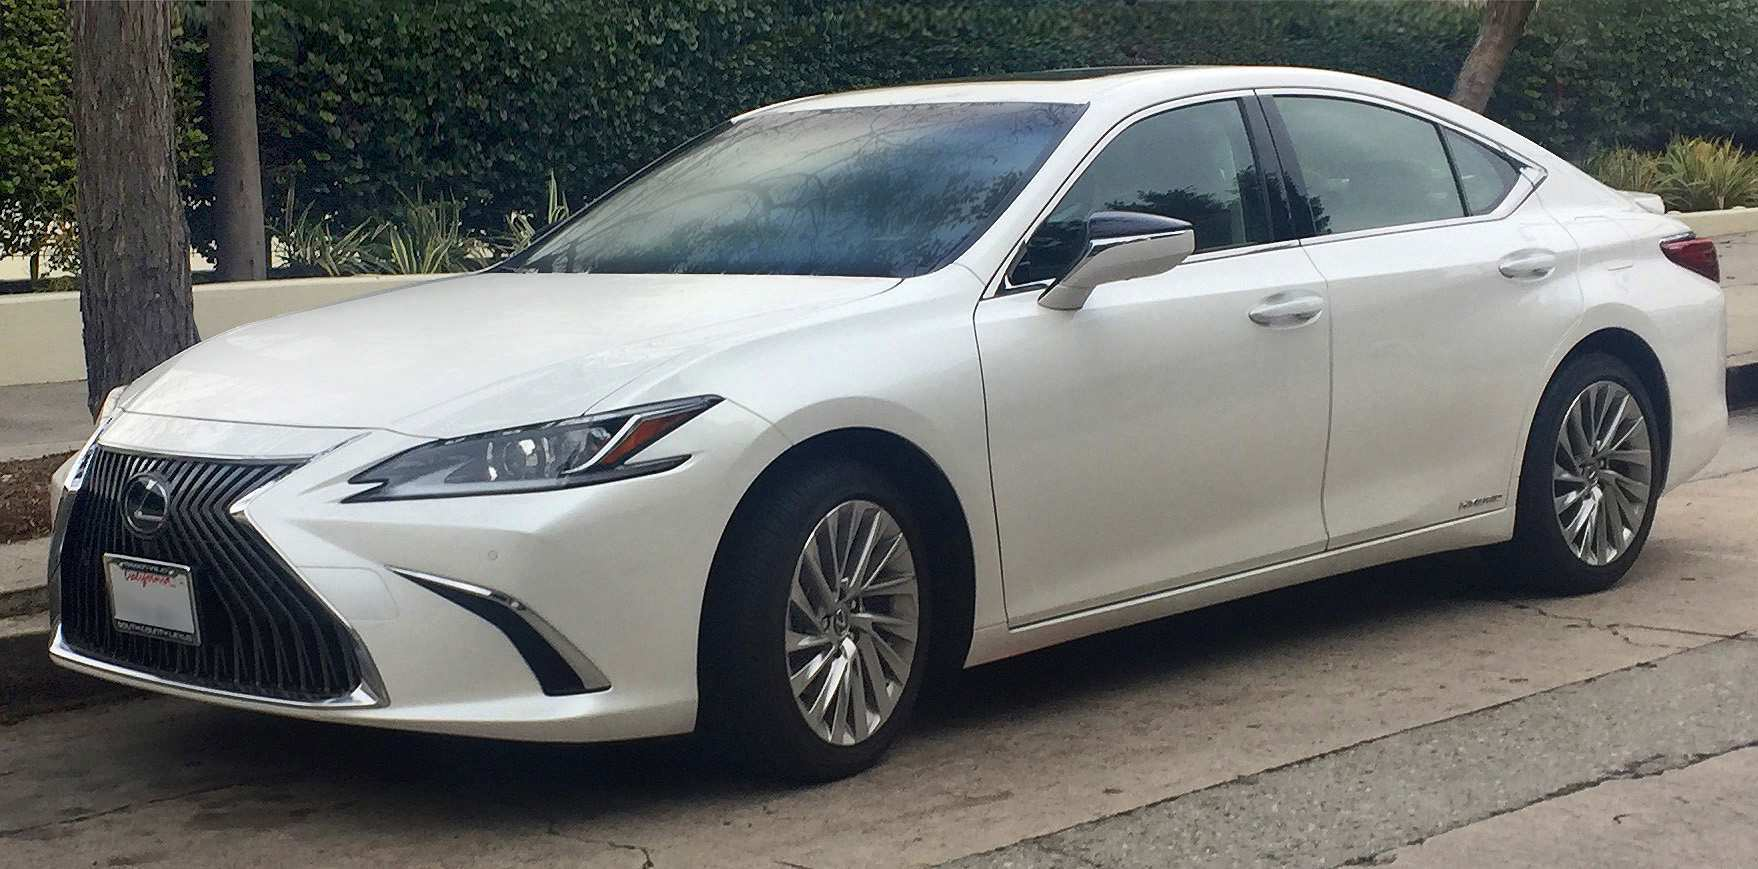 59 The Best 2020 Lexus IS 250 Picture